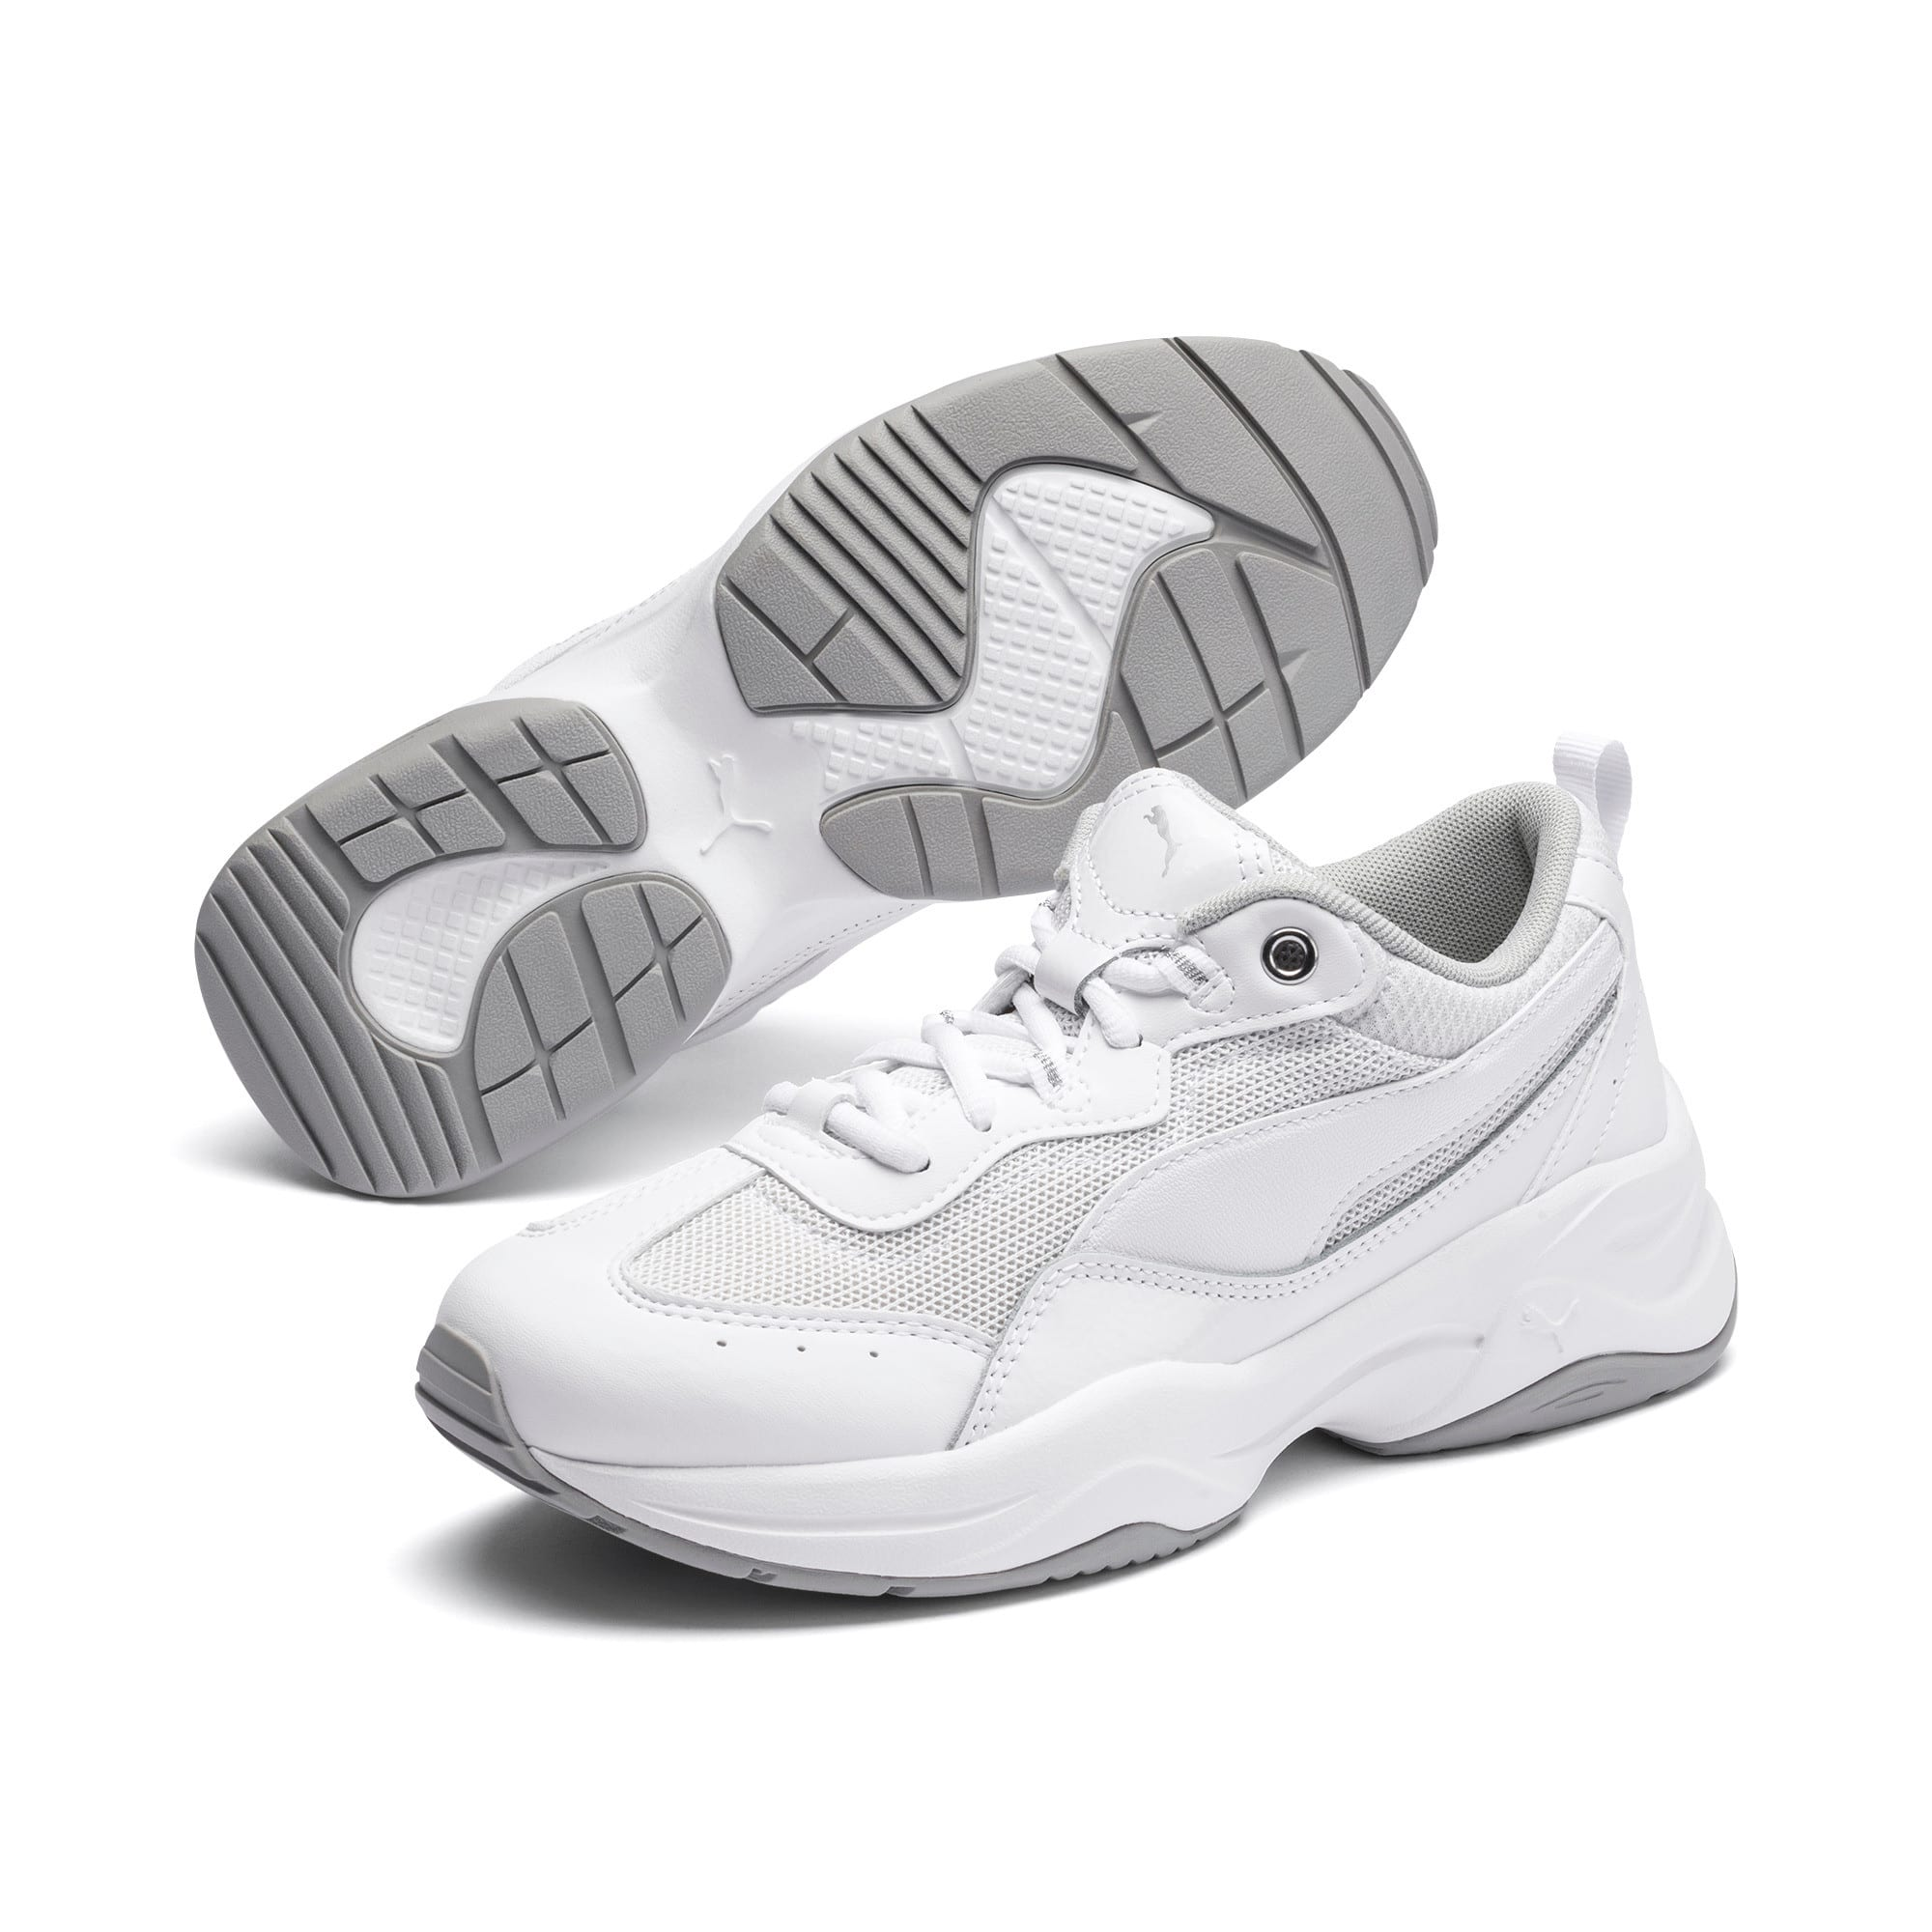 Thumbnail 2 of Cilia Patent Women's Trainers, White-Silver-Gray Violet, medium